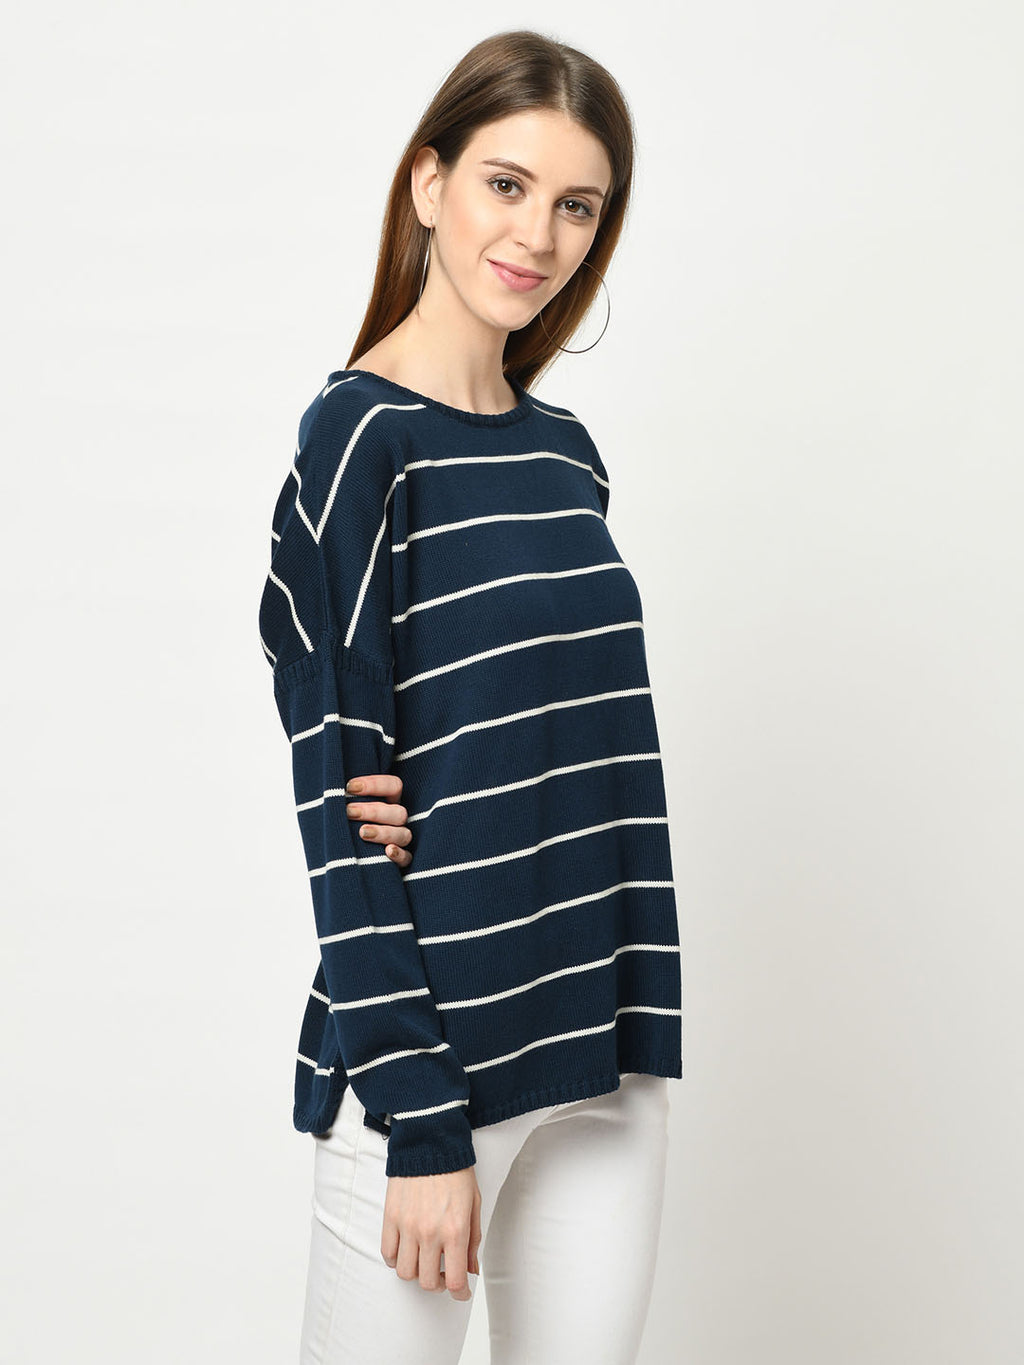 Navy And White Striped Sweater - Avsoy